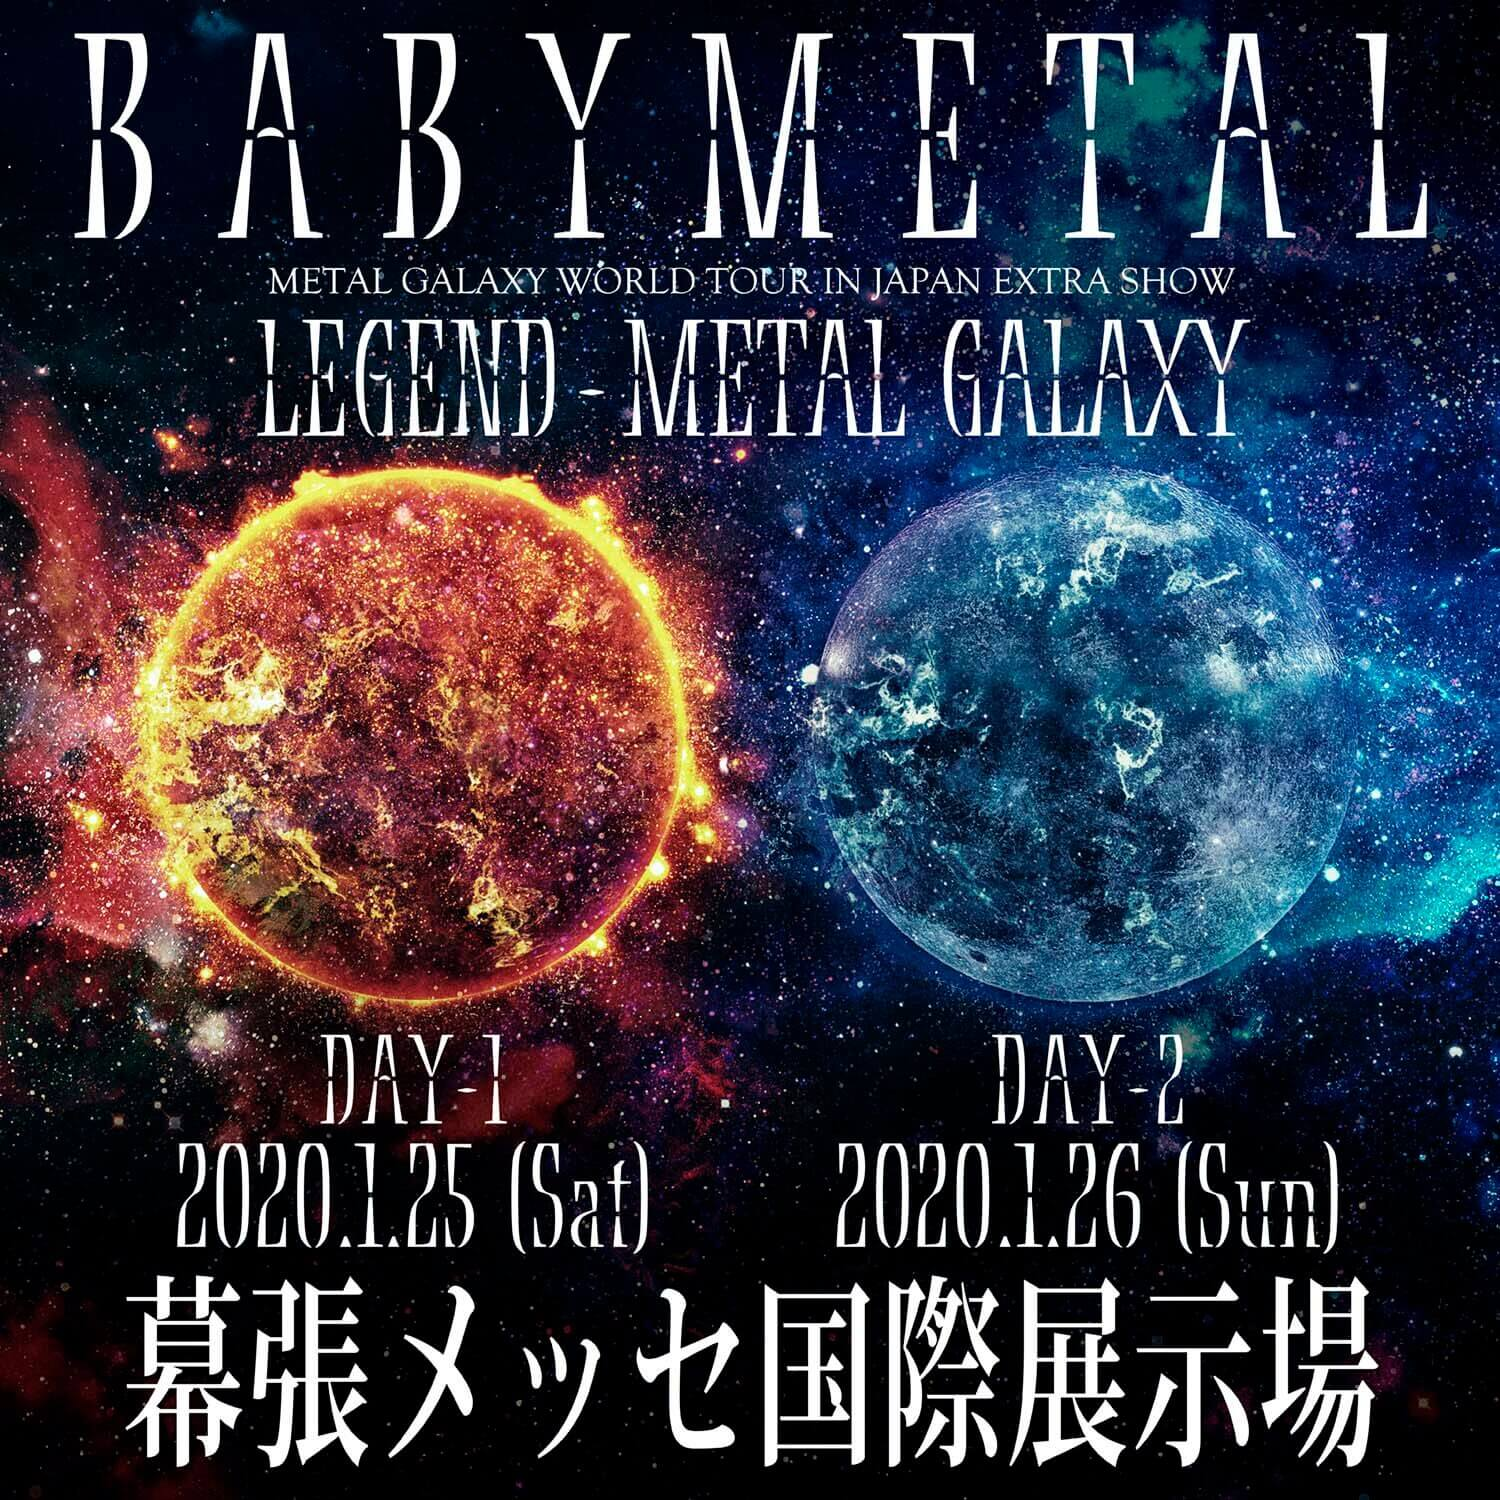 Babymetal Tour 2020.Babymetal Add More Japan Dates To Metal Galaxy World Tour